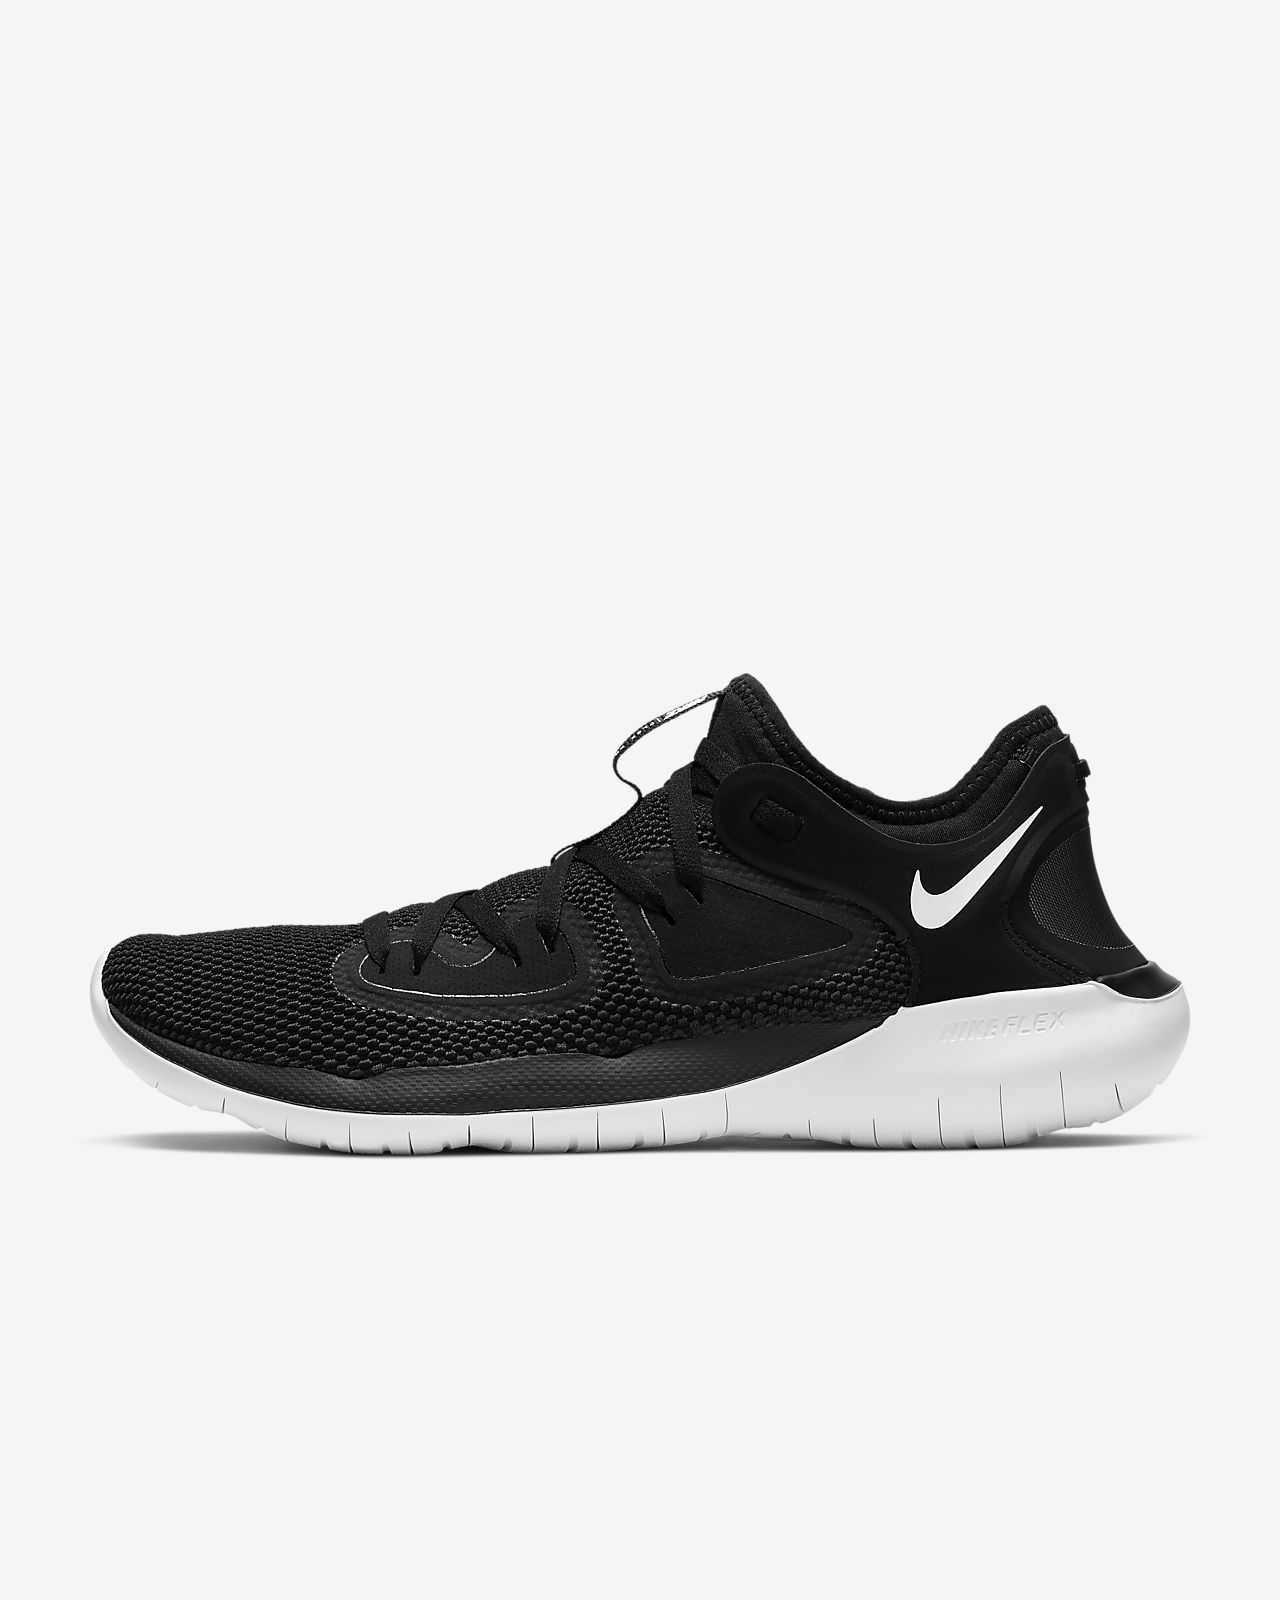 4feb7d81496b Nike Flex RN 2019 Men s Running Shoe. Nike.com GB